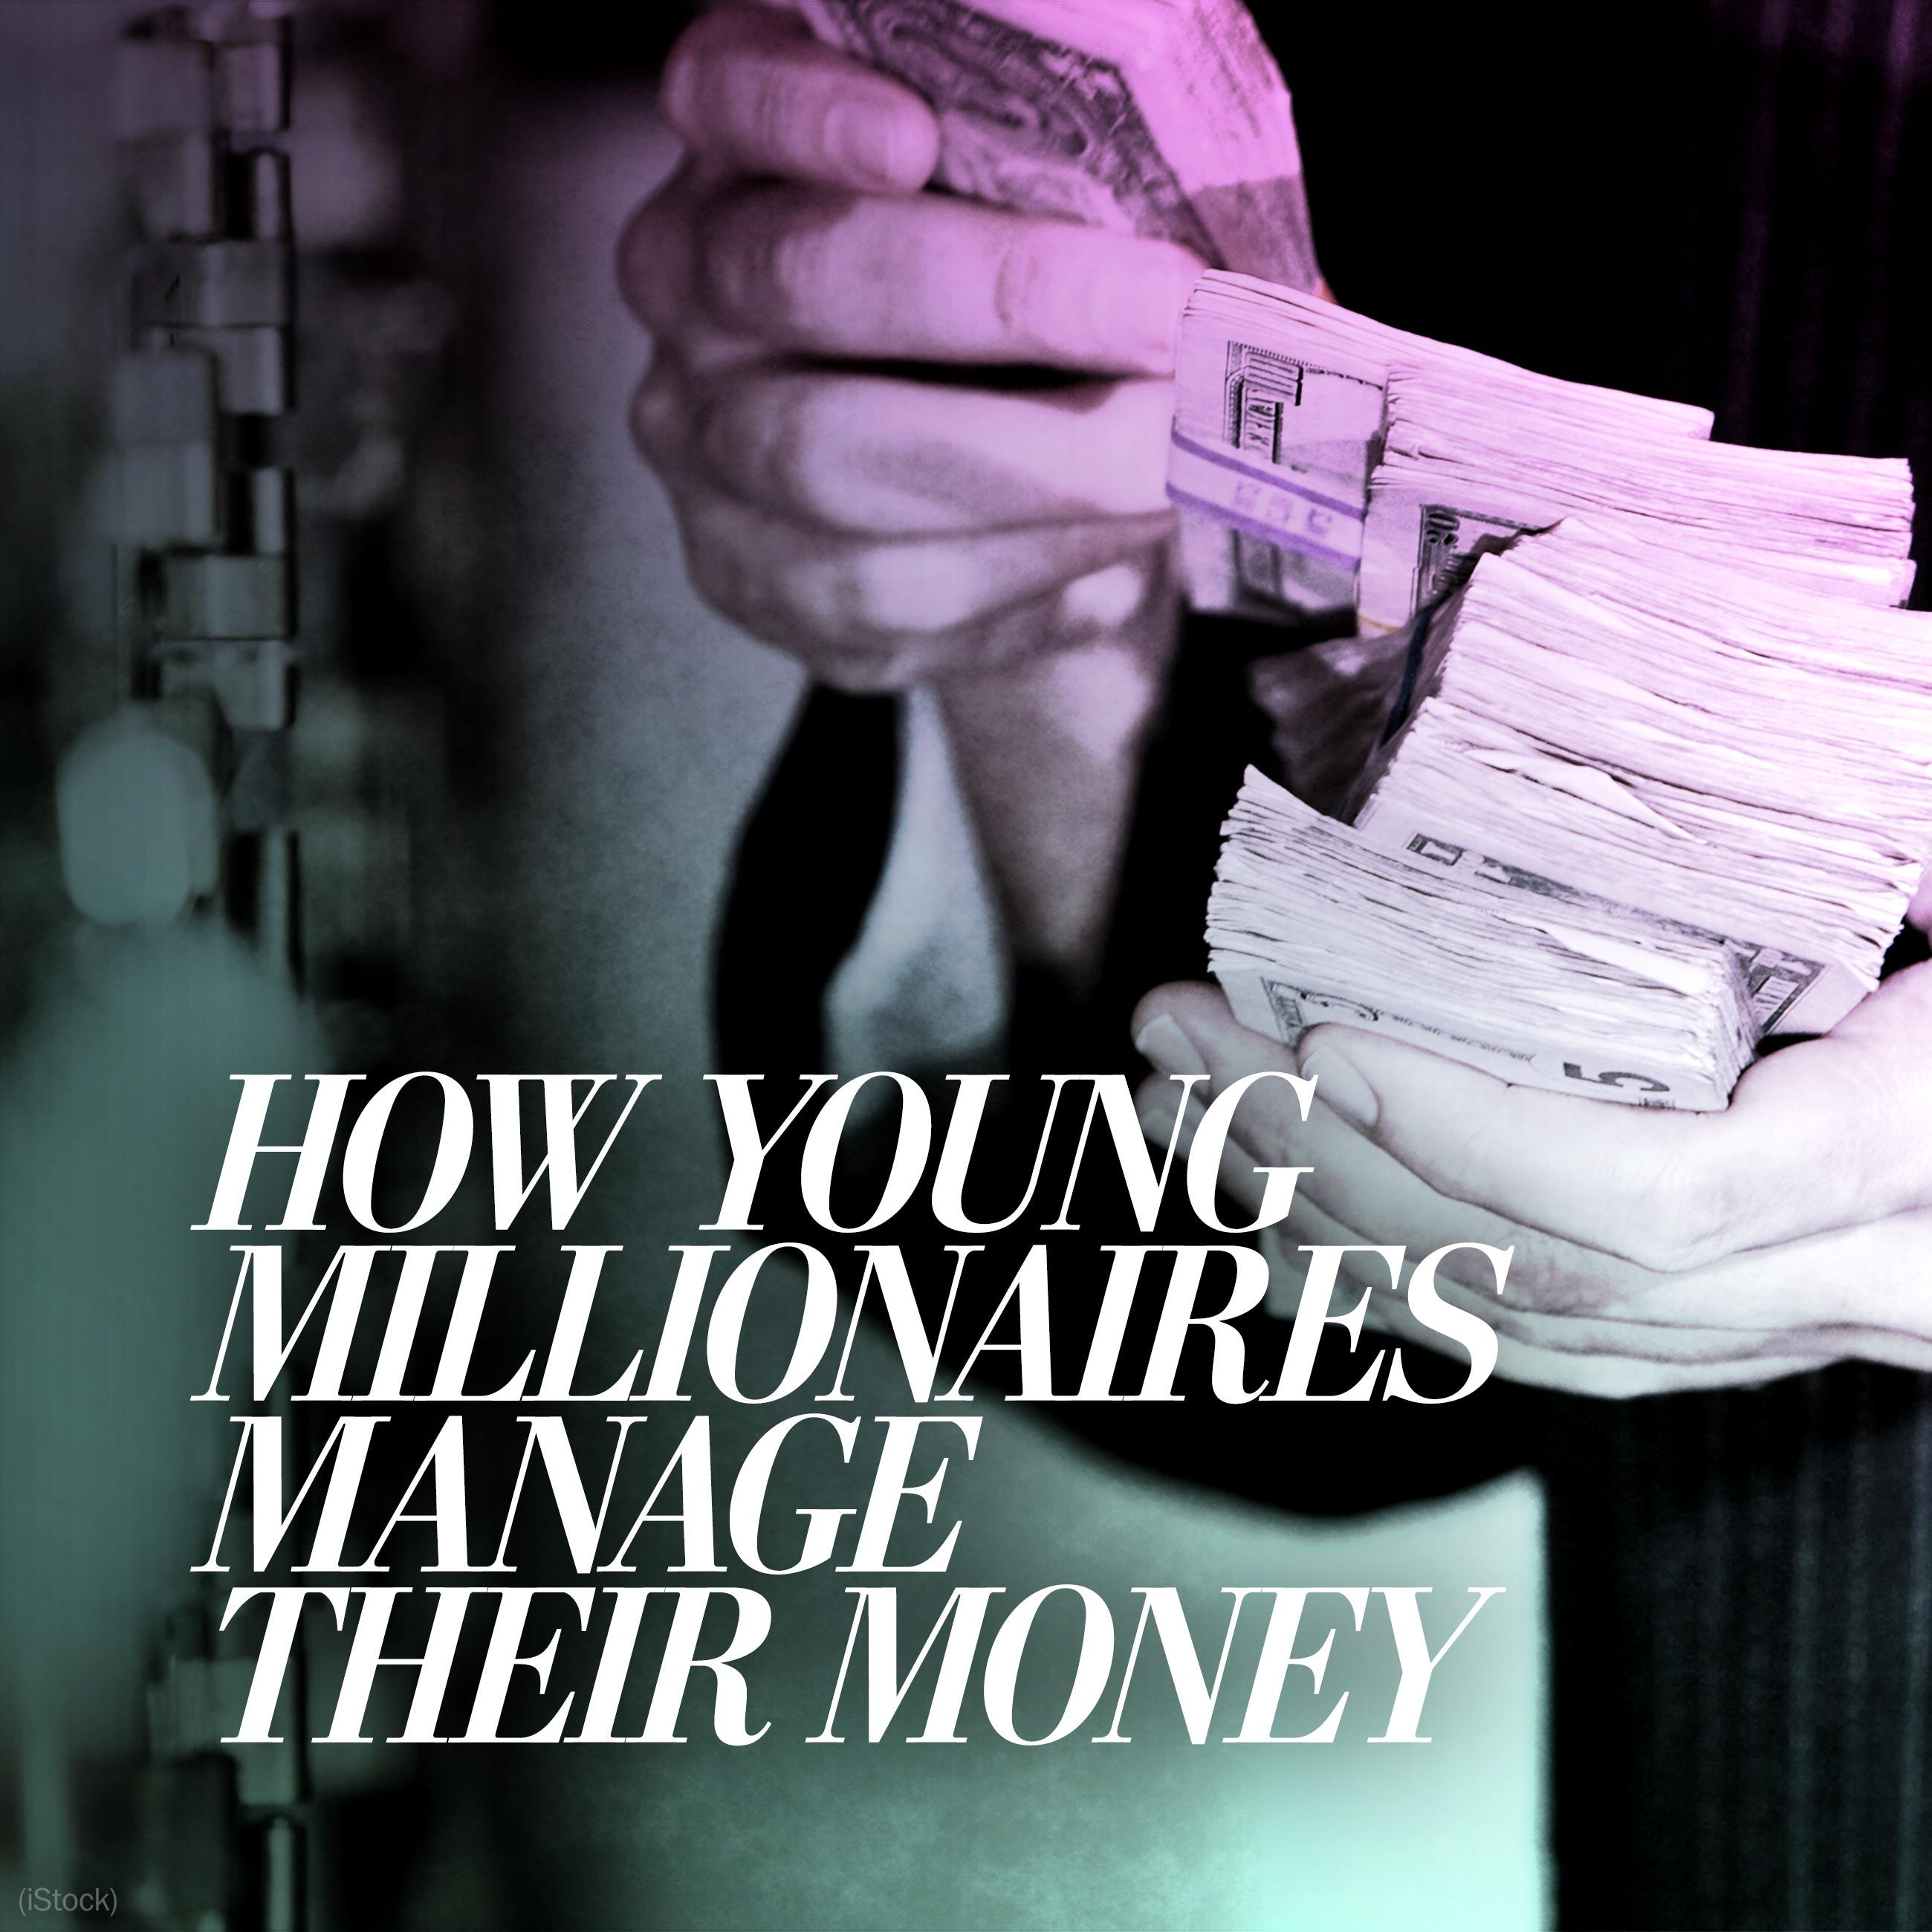 How millionaires under 40 manage their money